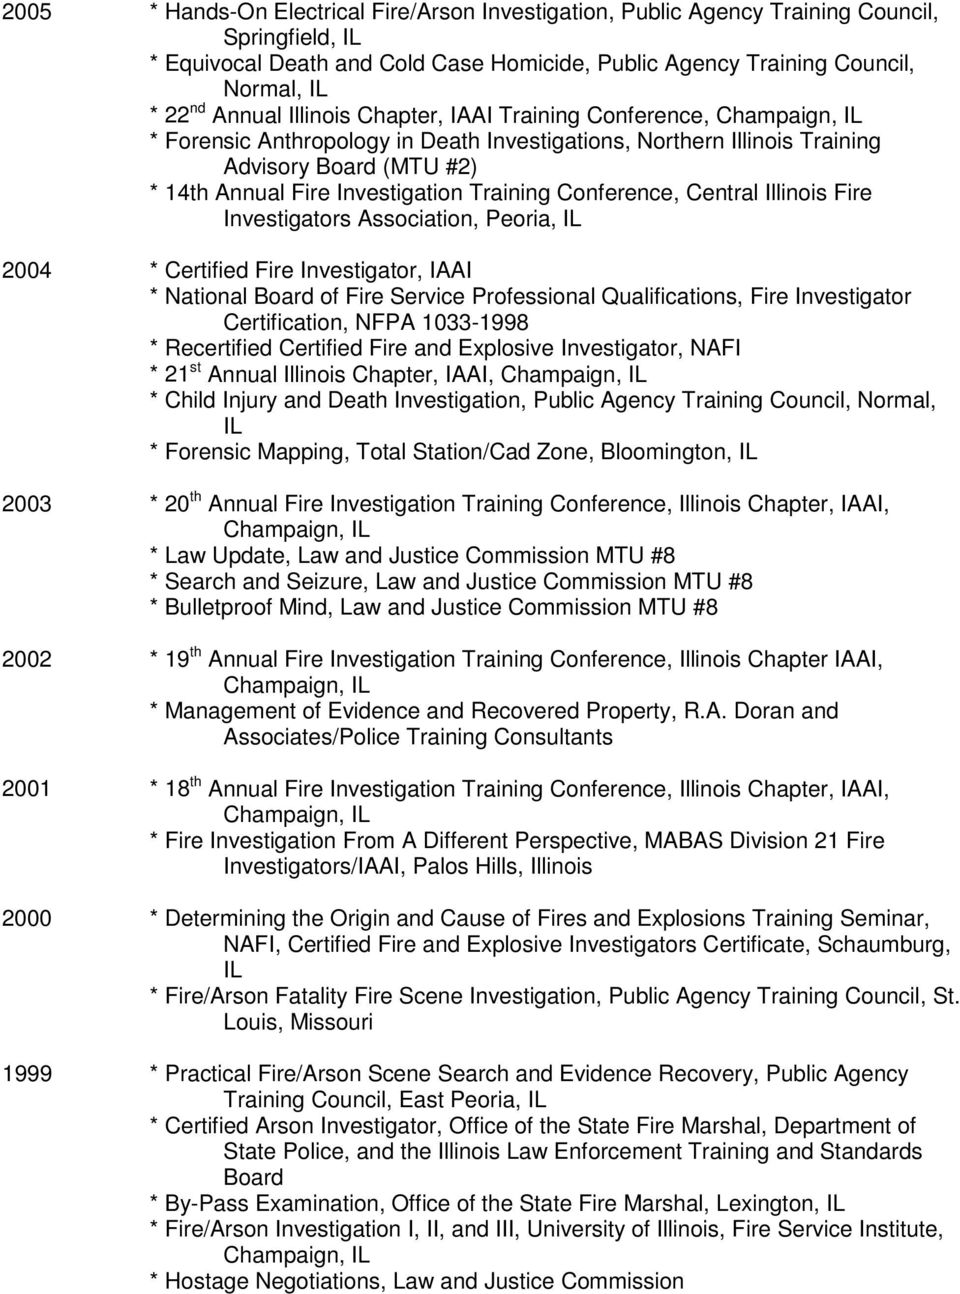 Investigators 2004 * Certified Fire Investigator, IAAI * National Board of Fire Service Professional Qualifications, Fire Investigator Certification, NFPA 1033-1998 * Recertified Certified Fire and